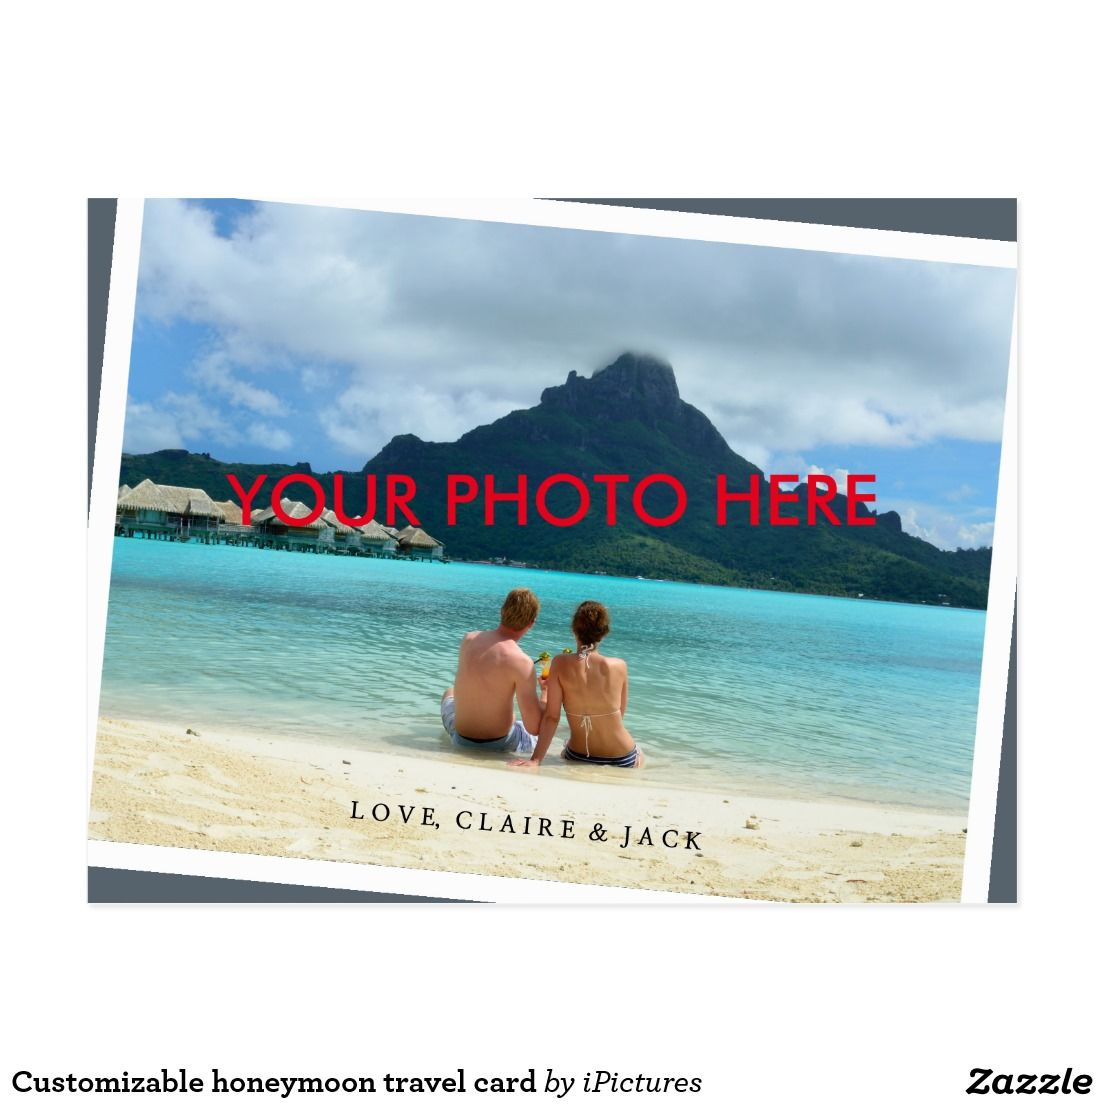 Customizable honeymoon travel card nowadays postcards customizable honeymoon travel card kristyandbryce Images